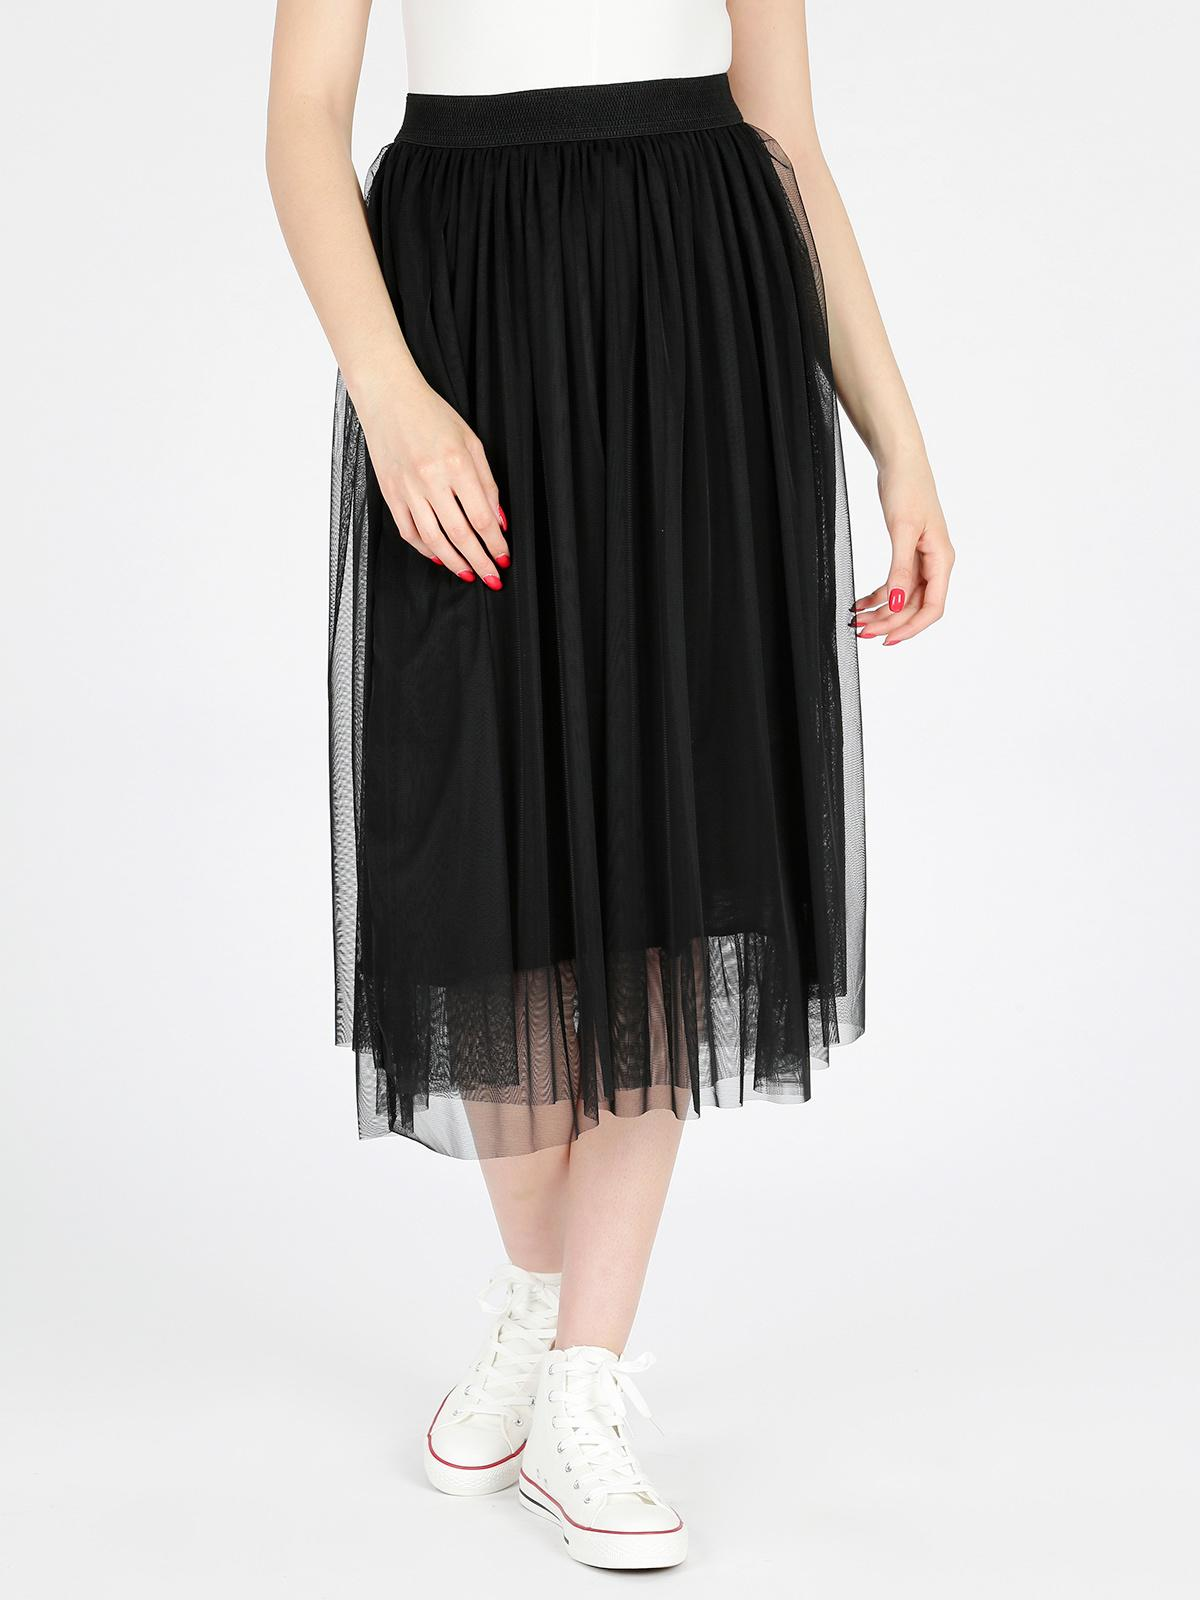 promo code 9637f 388d3 Gonna lunga in tulle - nero solada | MecShopping